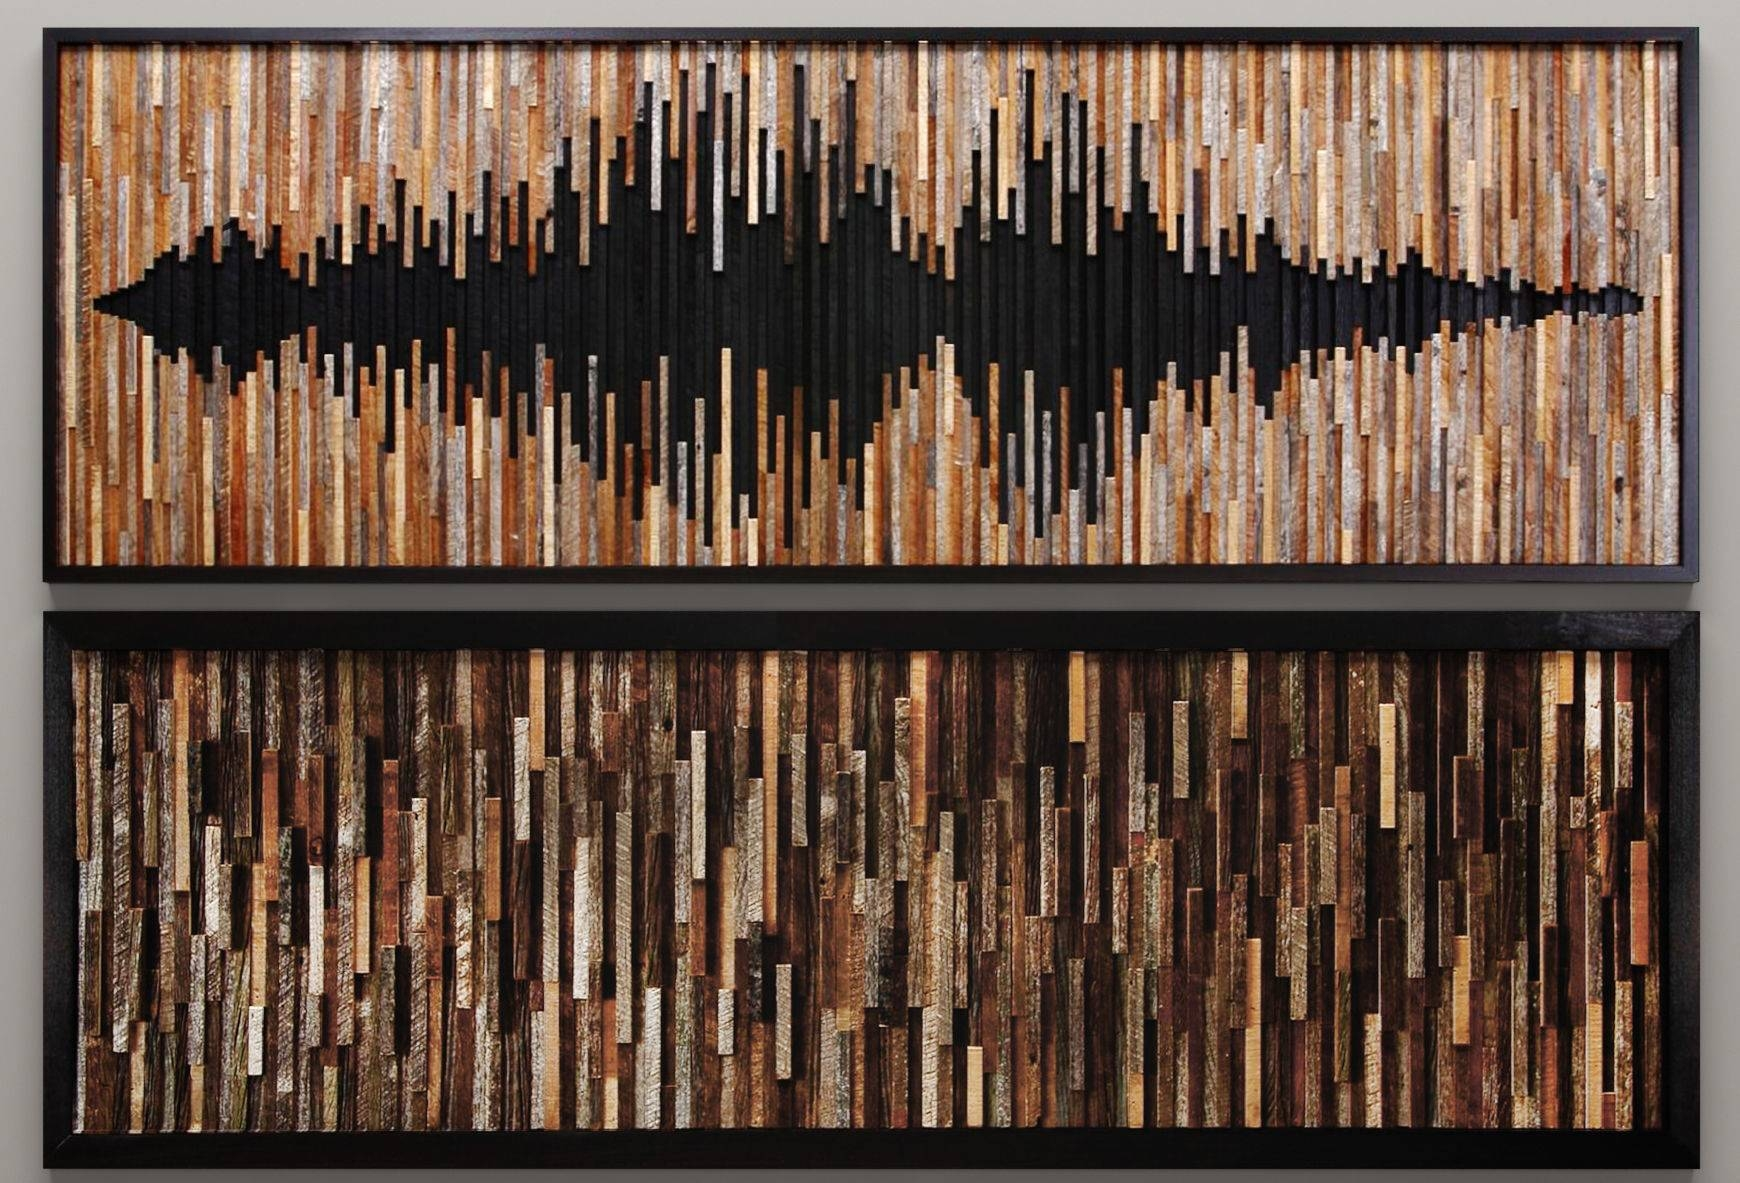 Wood Wall Art 46 3D Model | Cgtrader Inside Most Current Wall Art On Wood (View 11 of 20)